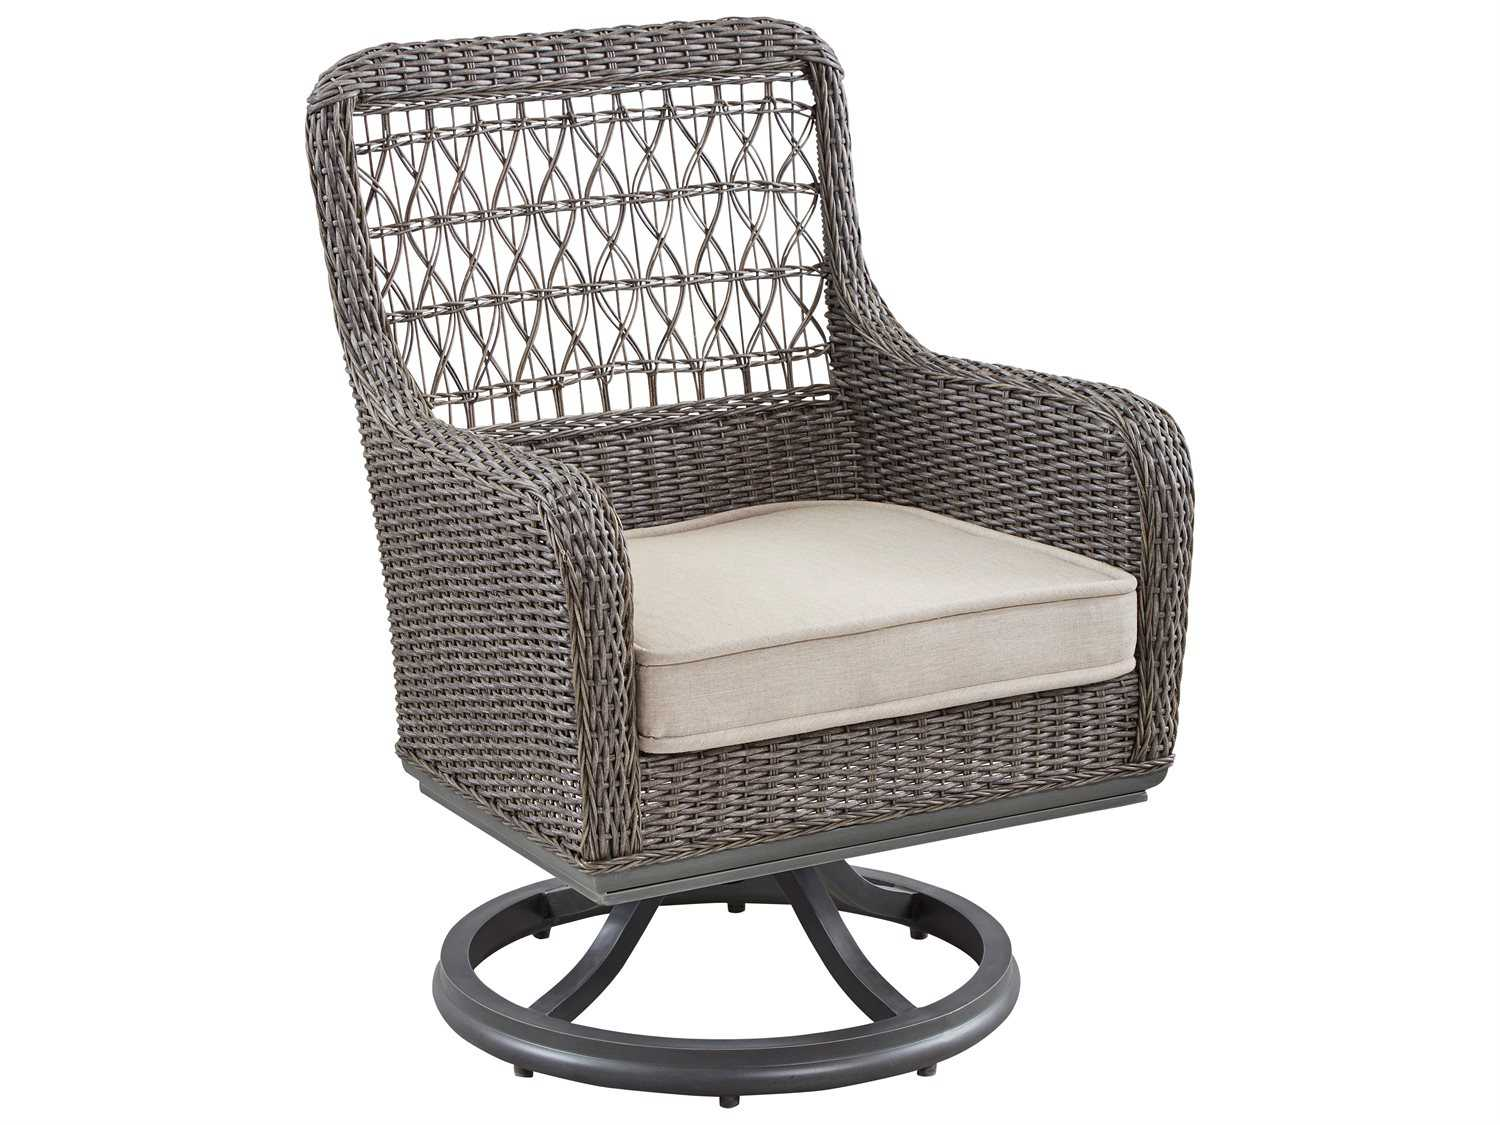 paula deen dogwood dining chairs table with and bench outdoor wicker swivel chair